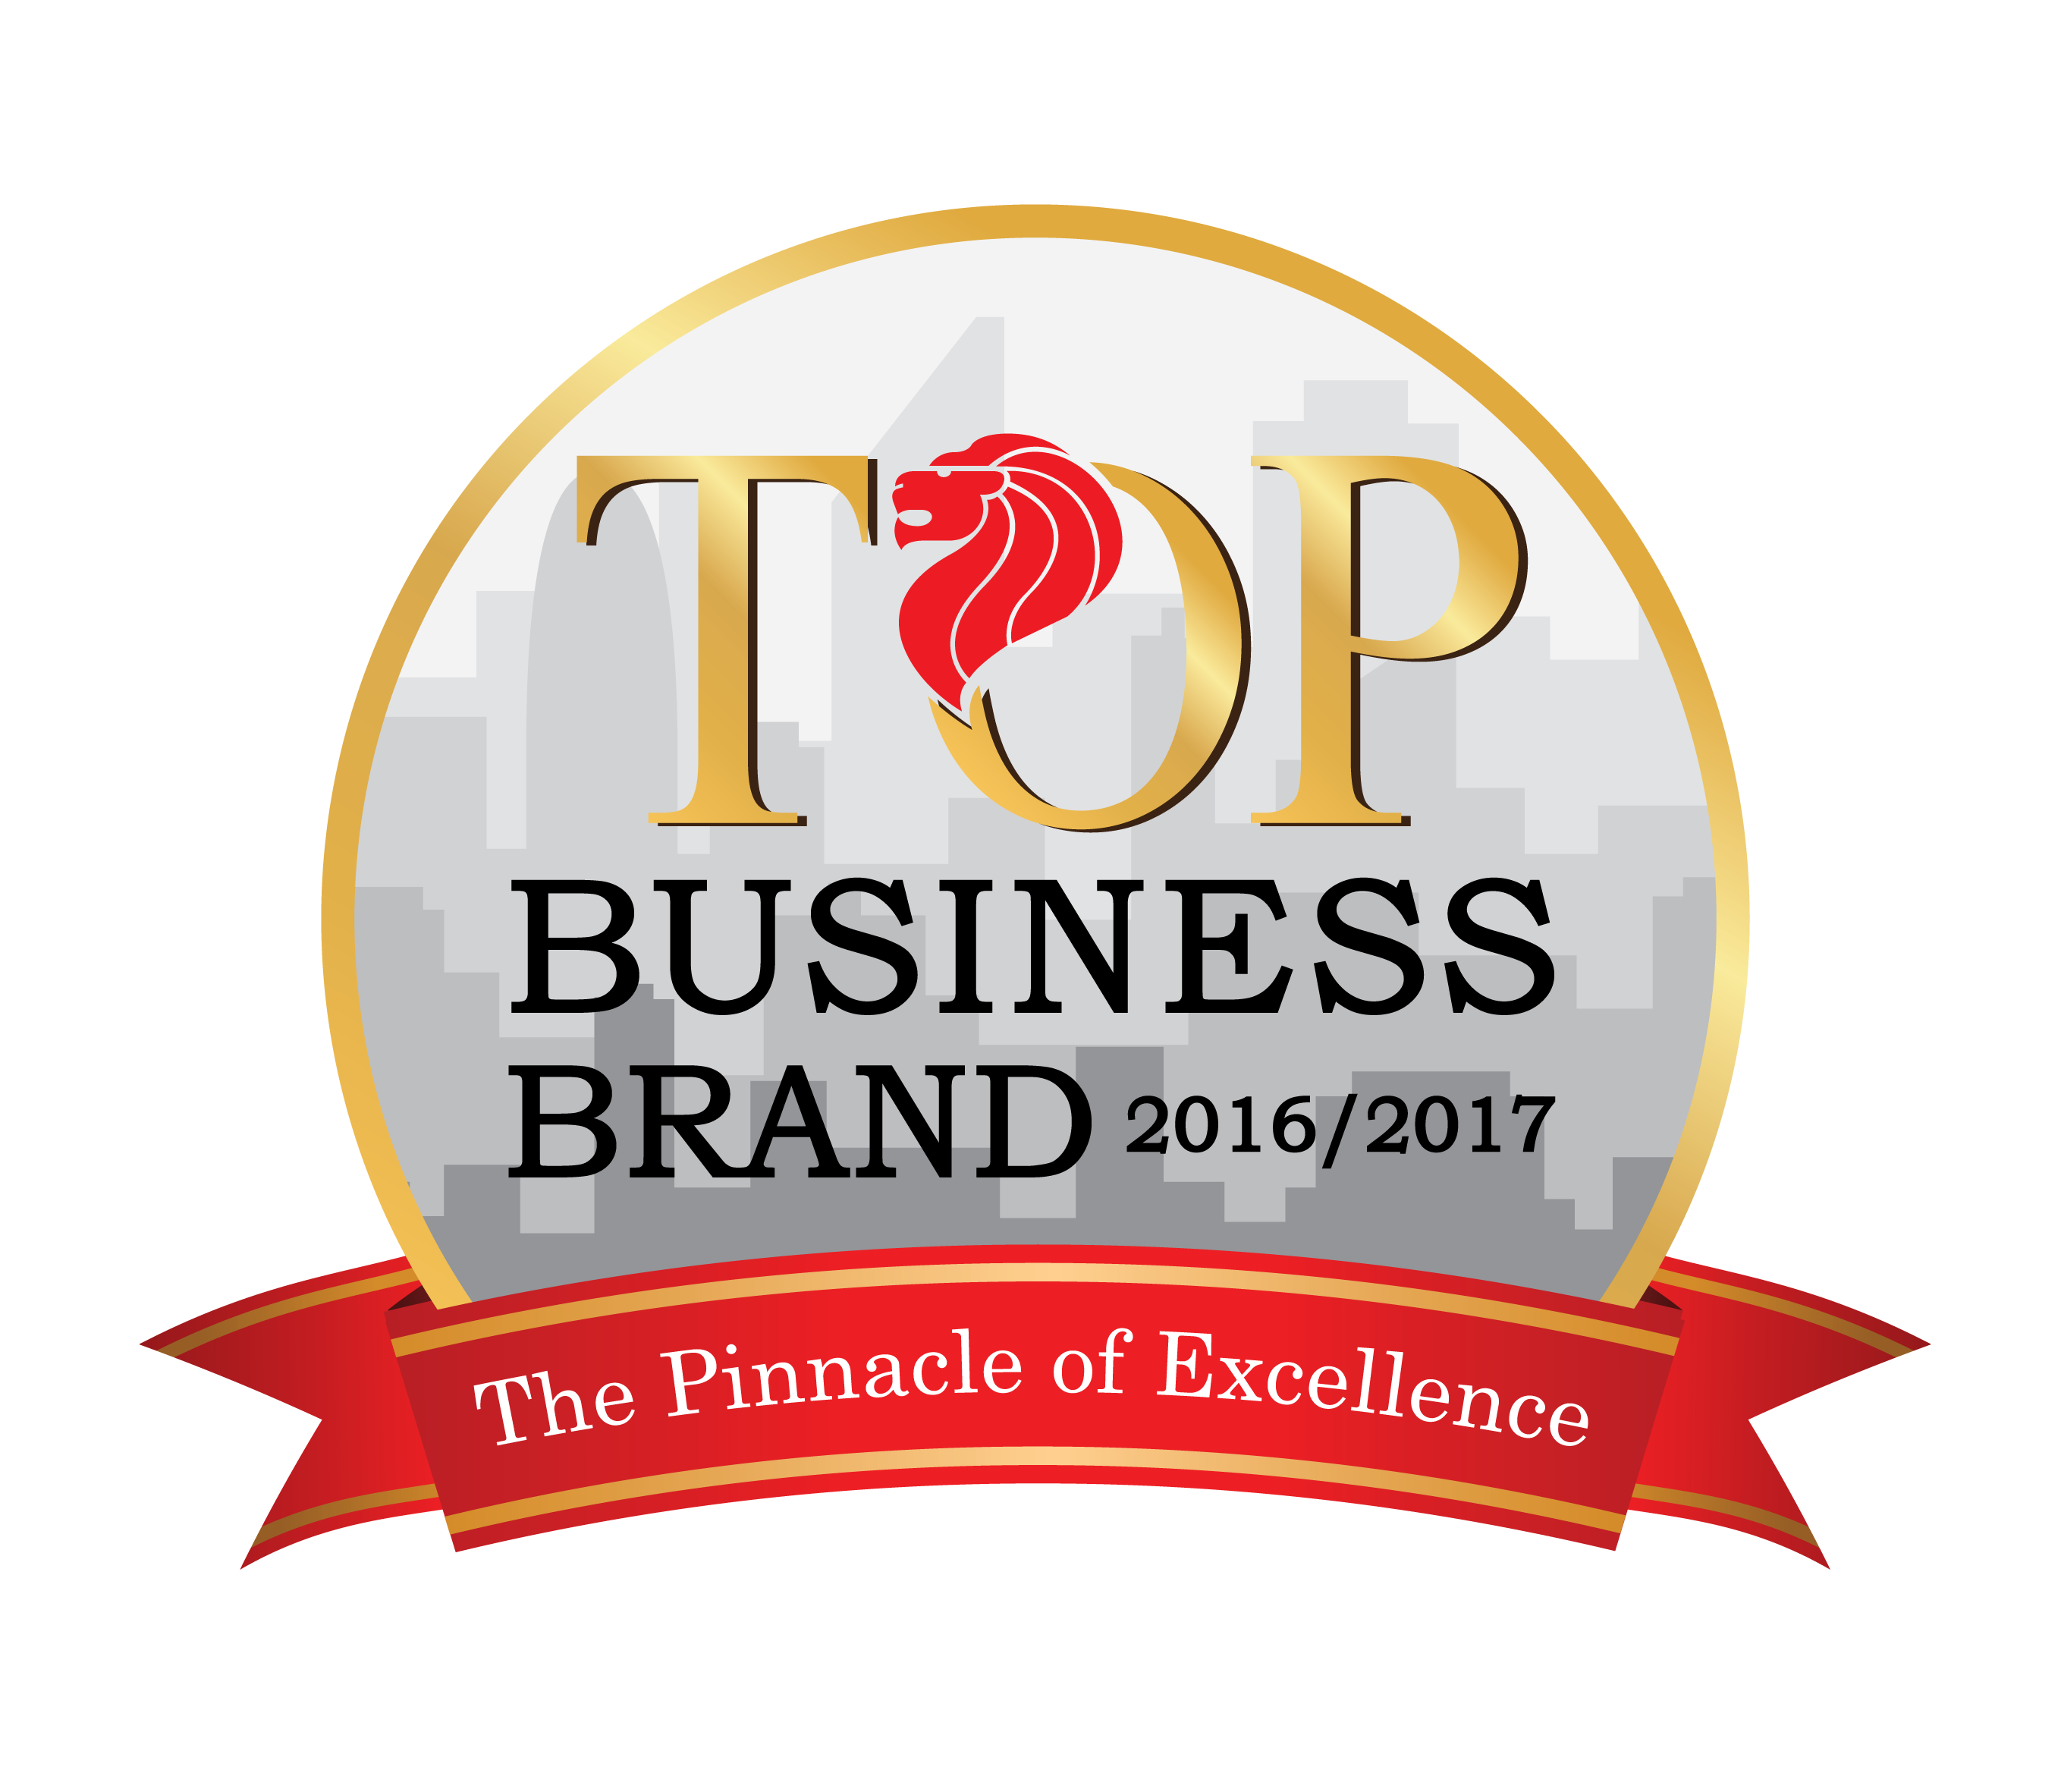 TOP Business Brand